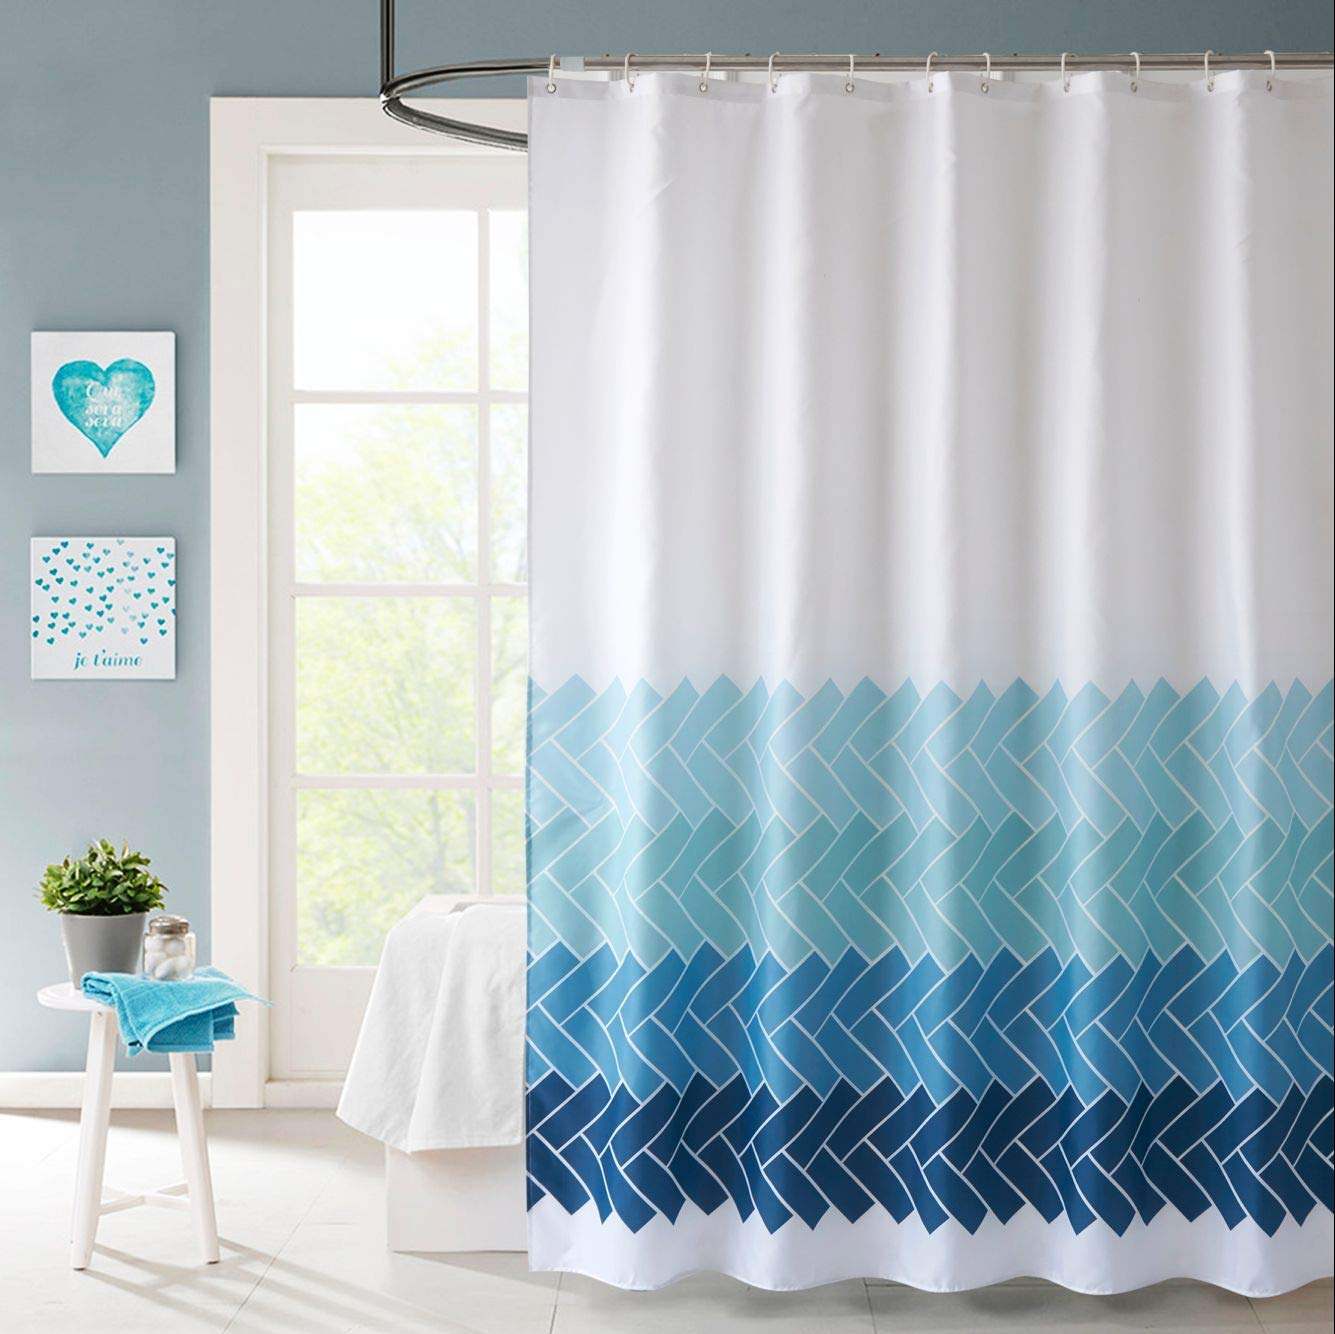 Clear Sfoothome Heavy Duty 100/% EVA Shower Curtain Liner,Waterproof Mildew-Free Shower Curtain for Bathroom Eco Friendly with Bottom Magnets and Metal Grommets,36inchx72inch